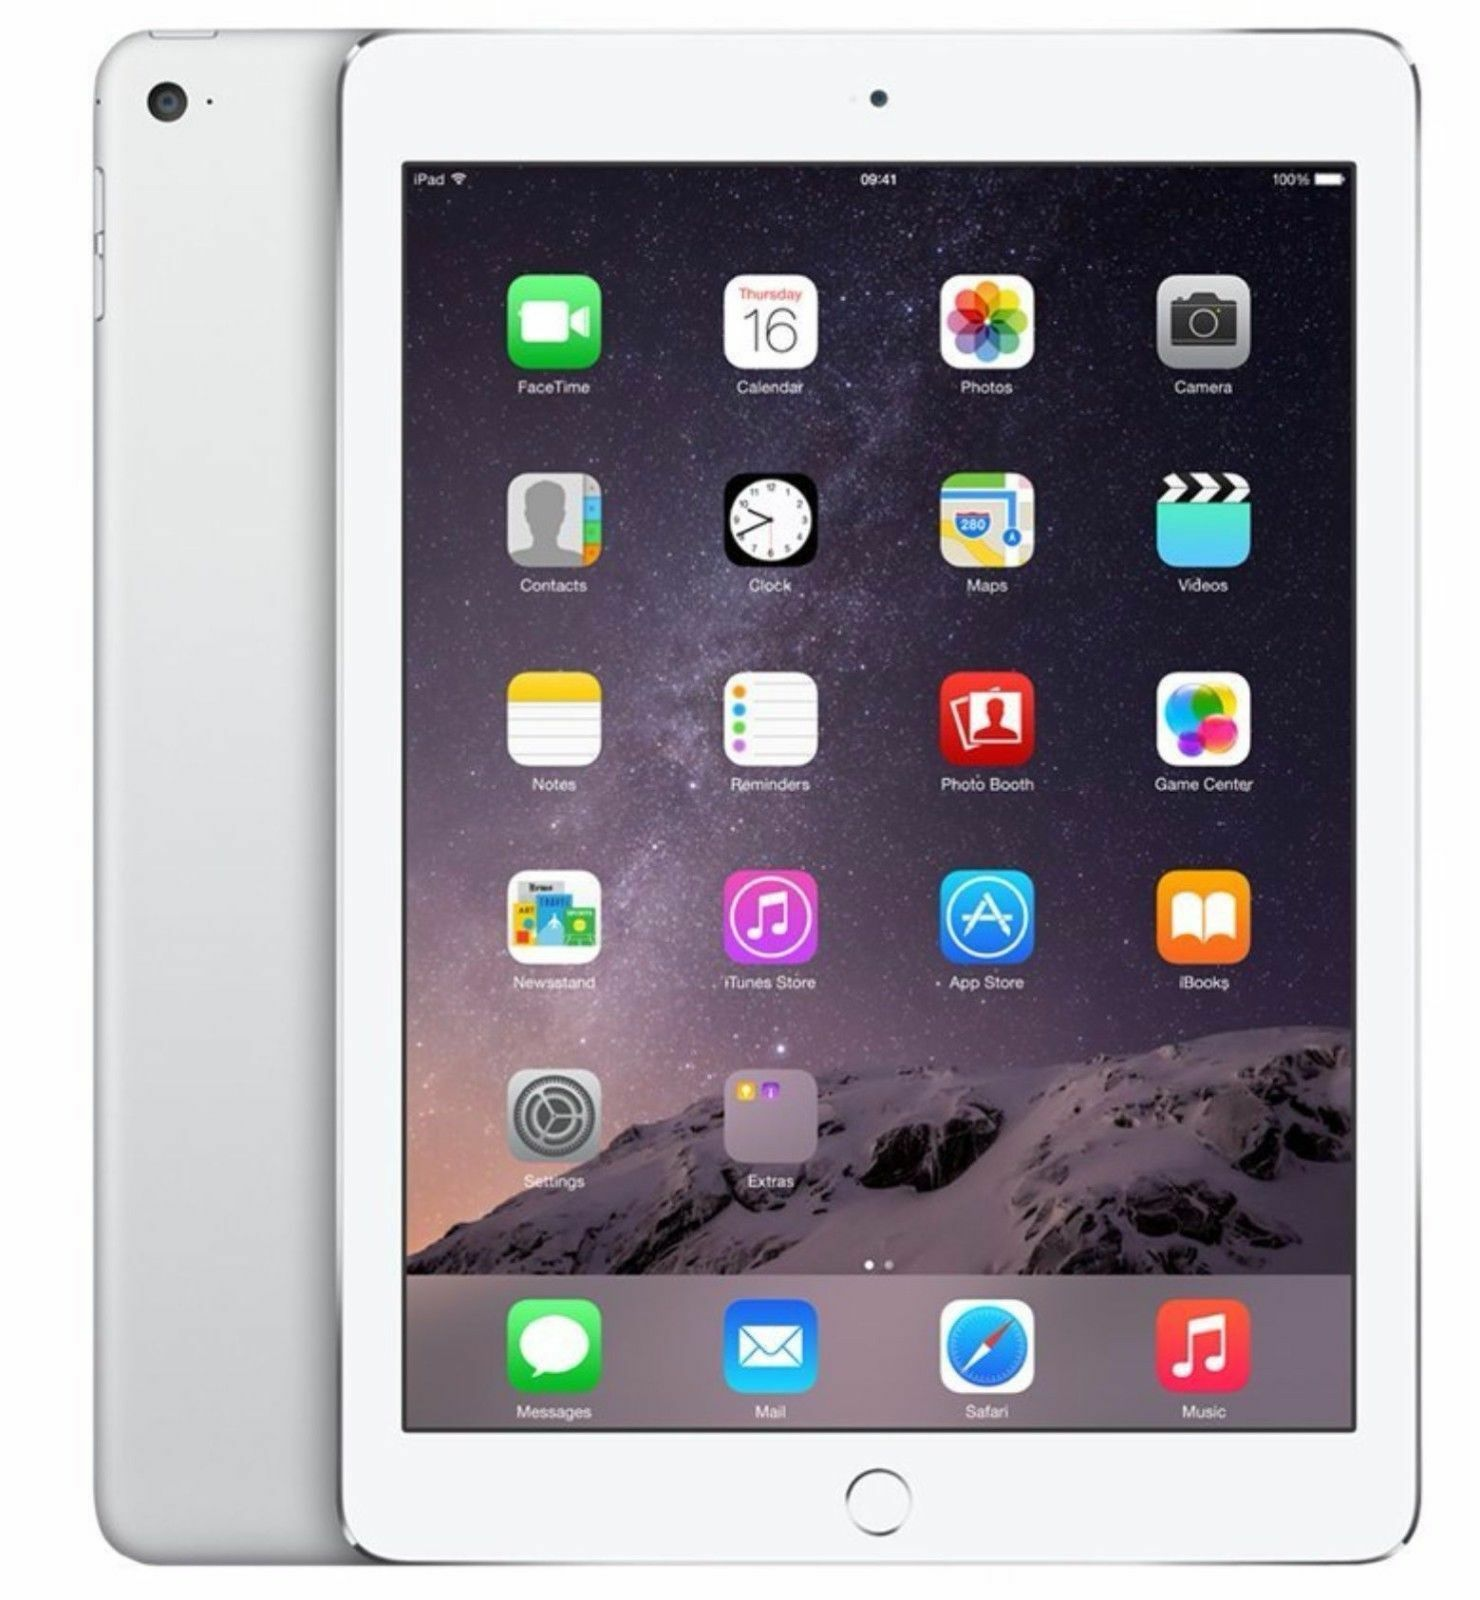 Apple iPad Air 2 64GB, Wi-Fi + Cellular(Unlocked), 9.7in -White/Silver (Grade B)